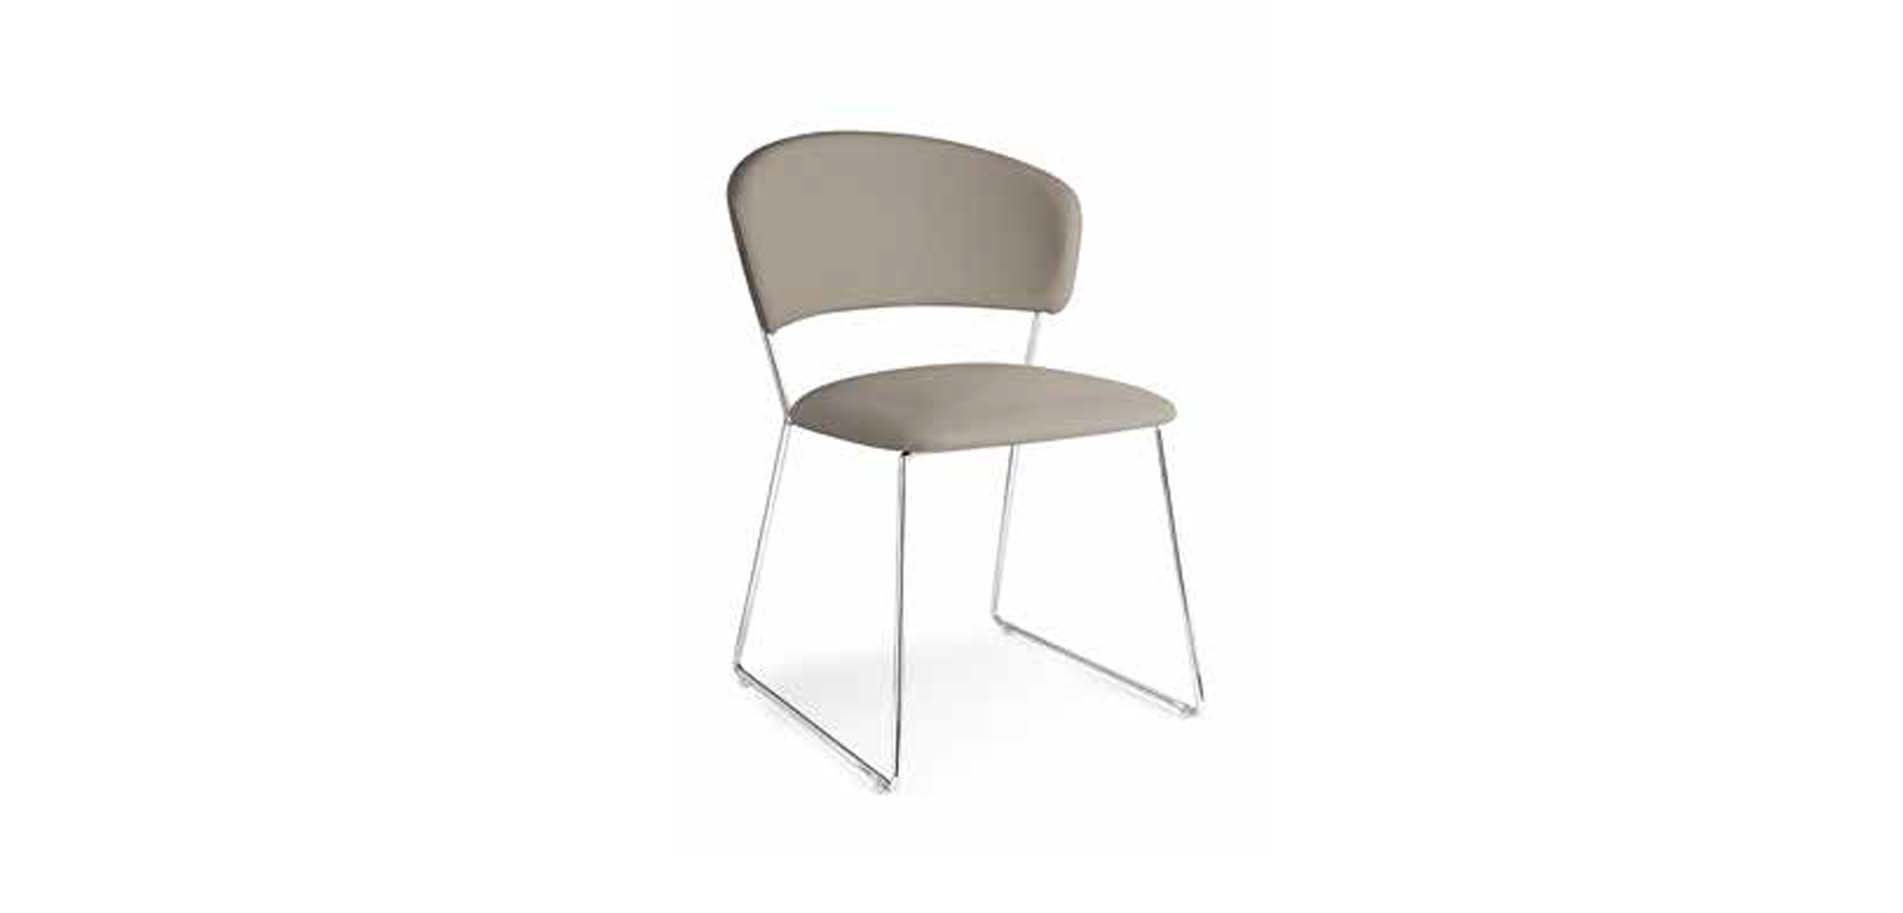 Atlantis Chair By Connubia Calligaris Έ ό